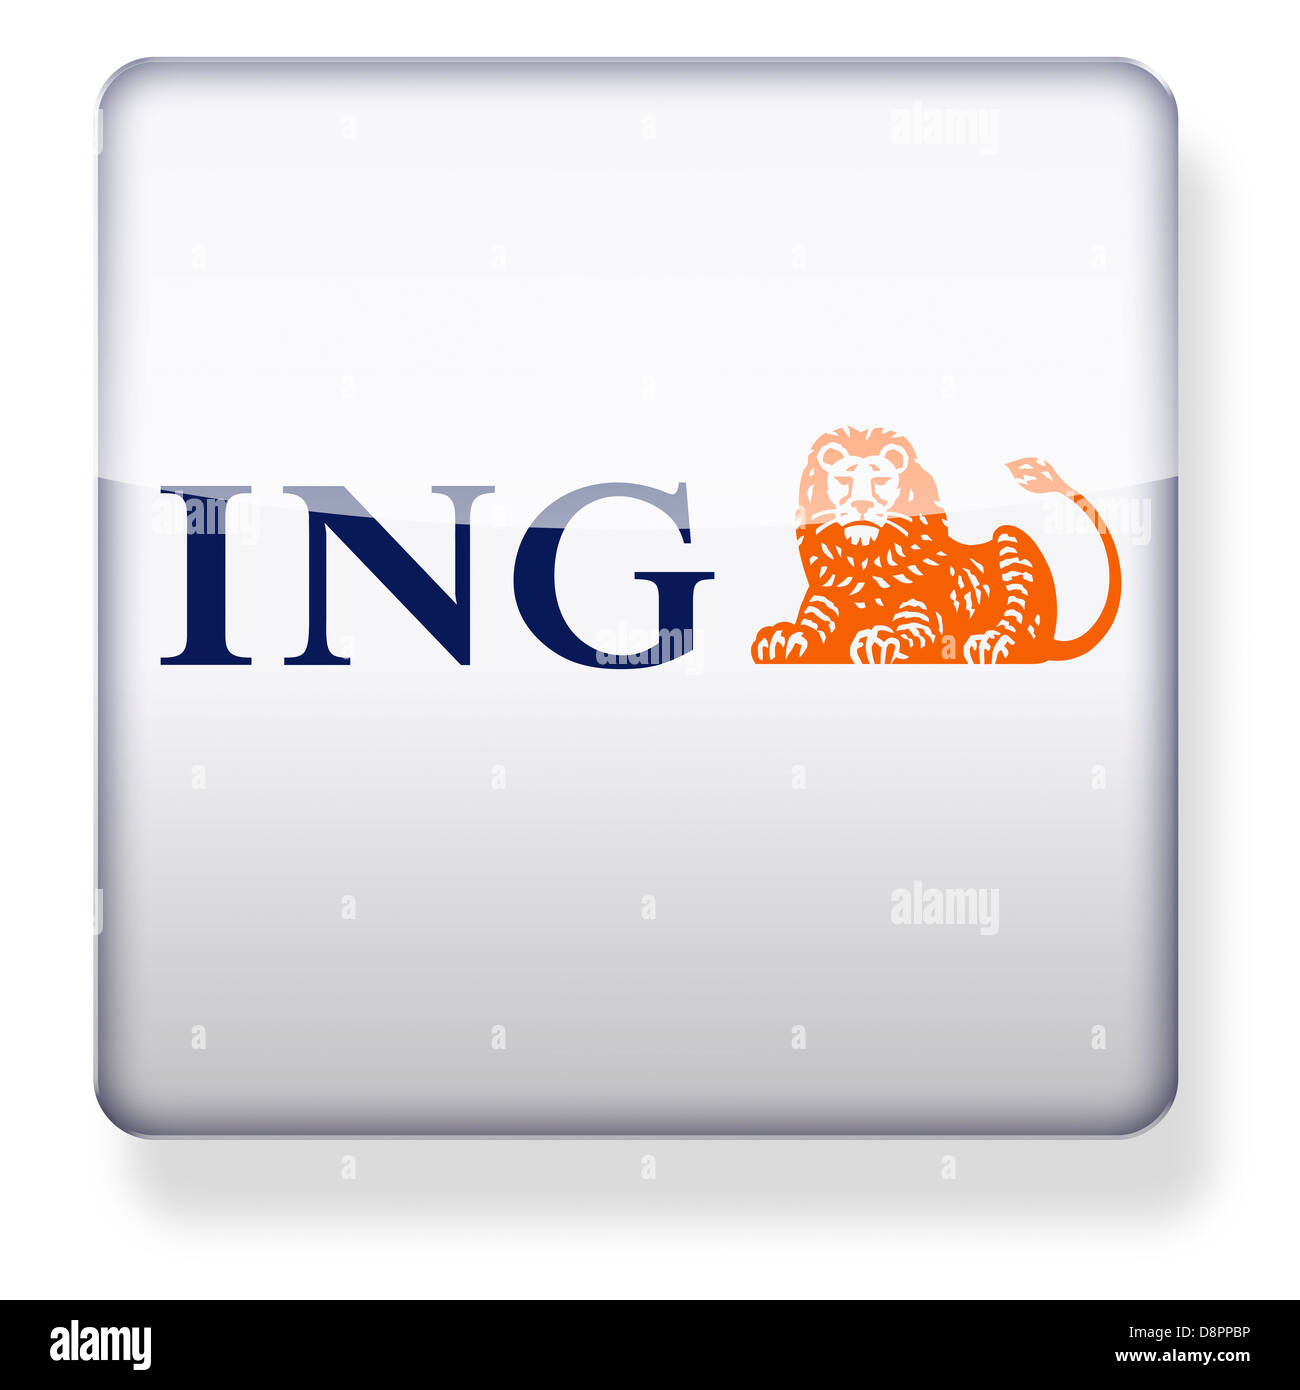 ing bank logo as an app icon clipping path included stock